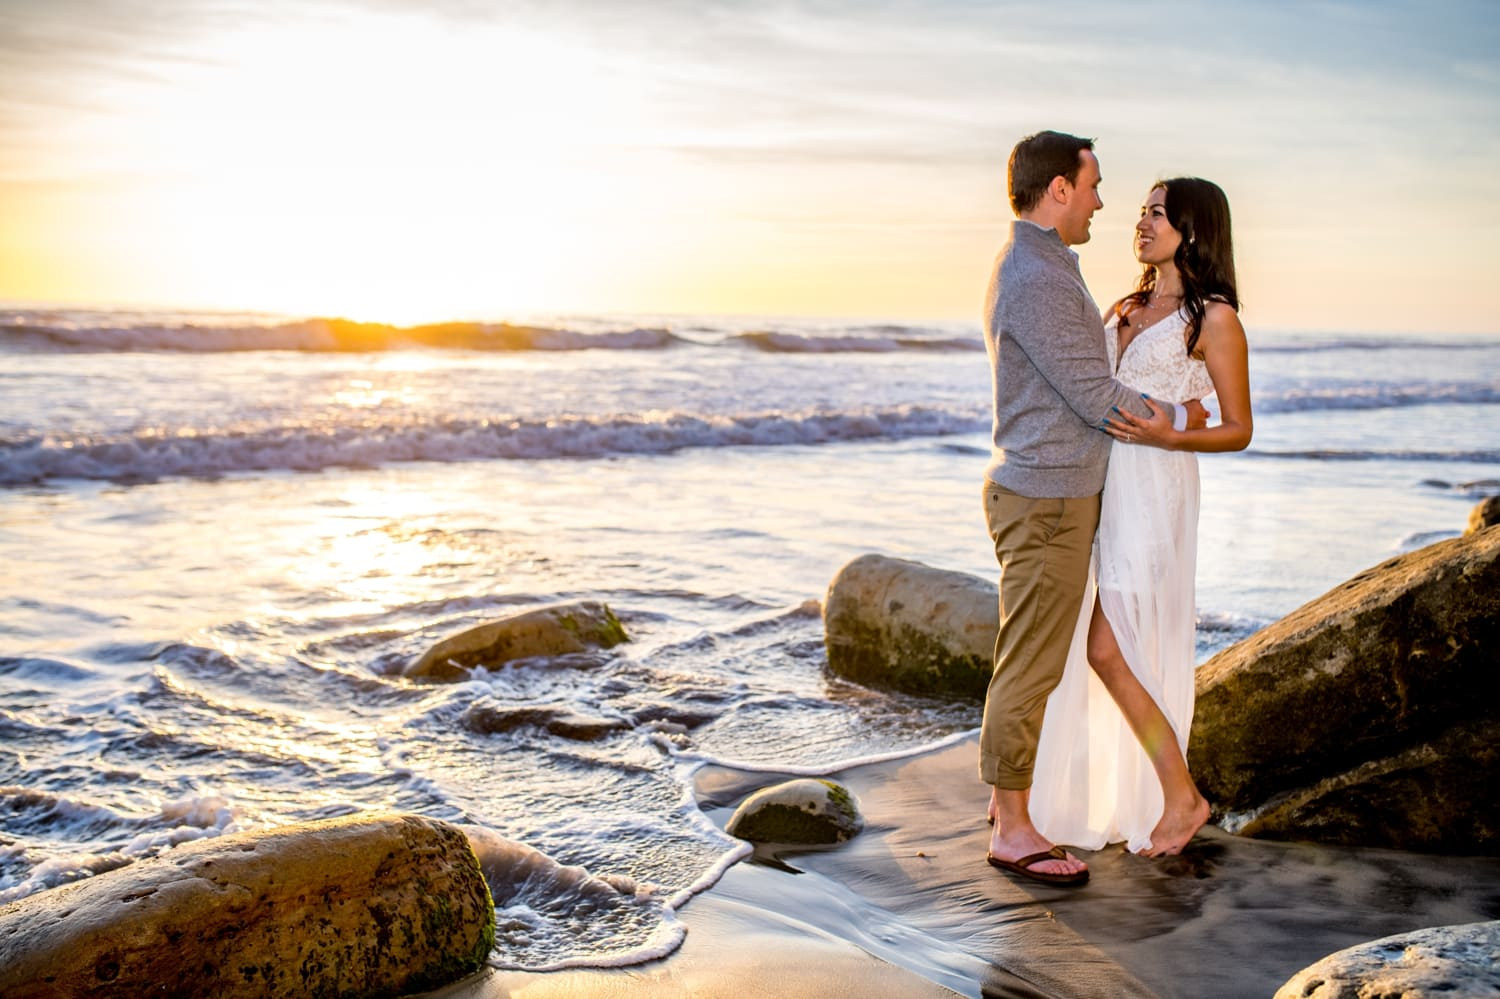 Bride and groom standing on the beach at sunset.